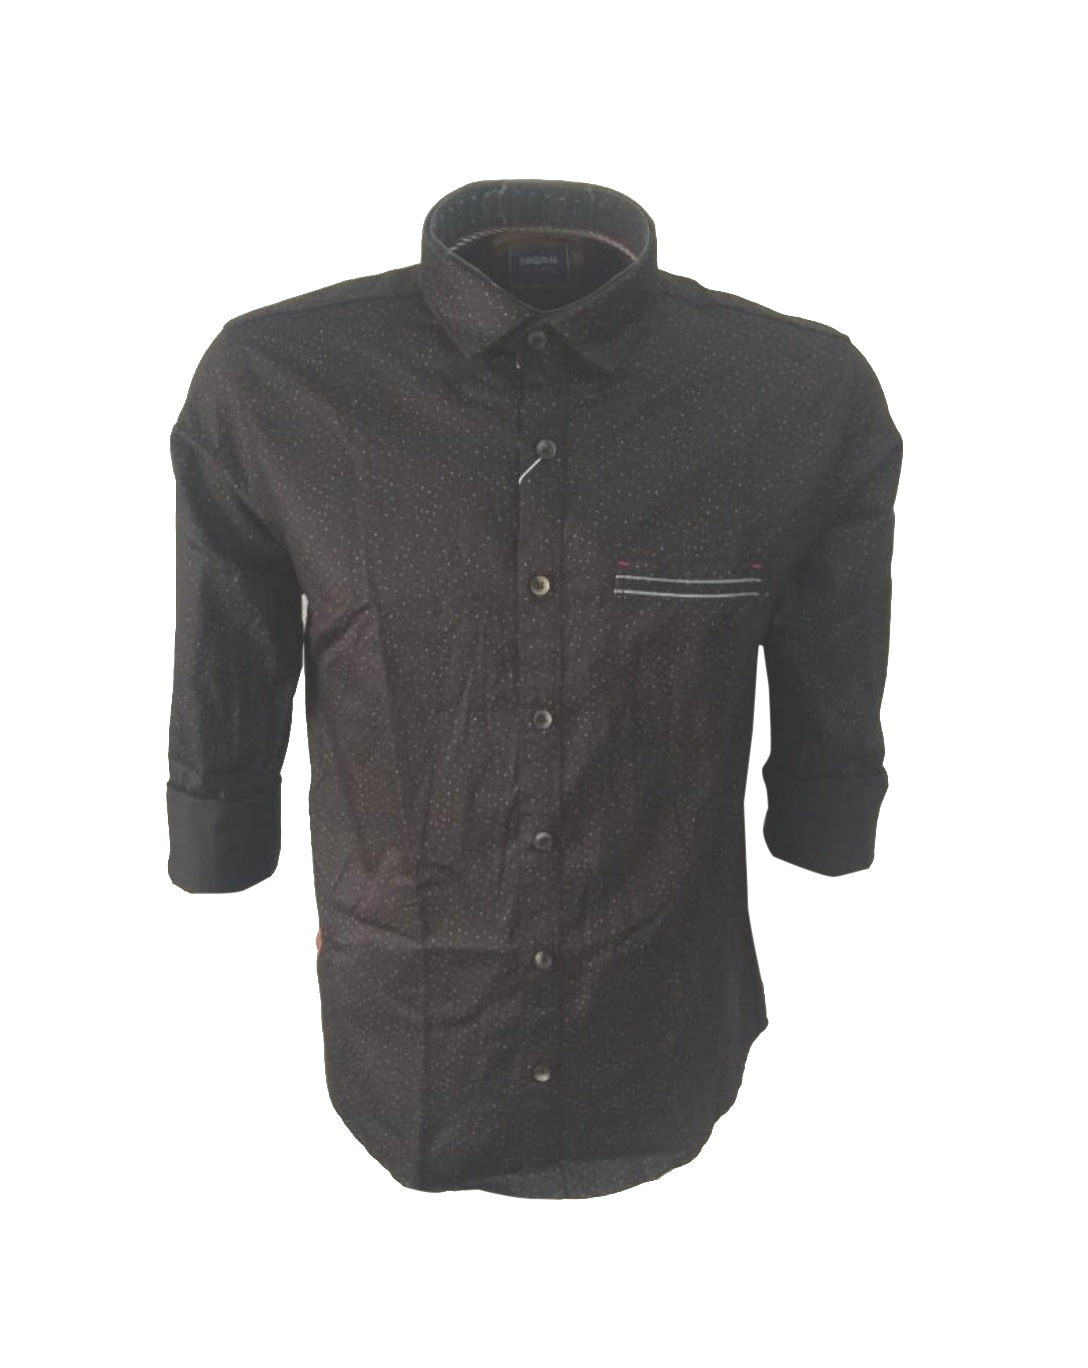 NC OCT J 711 2019-BLACK MENS CASUAL SHIRT